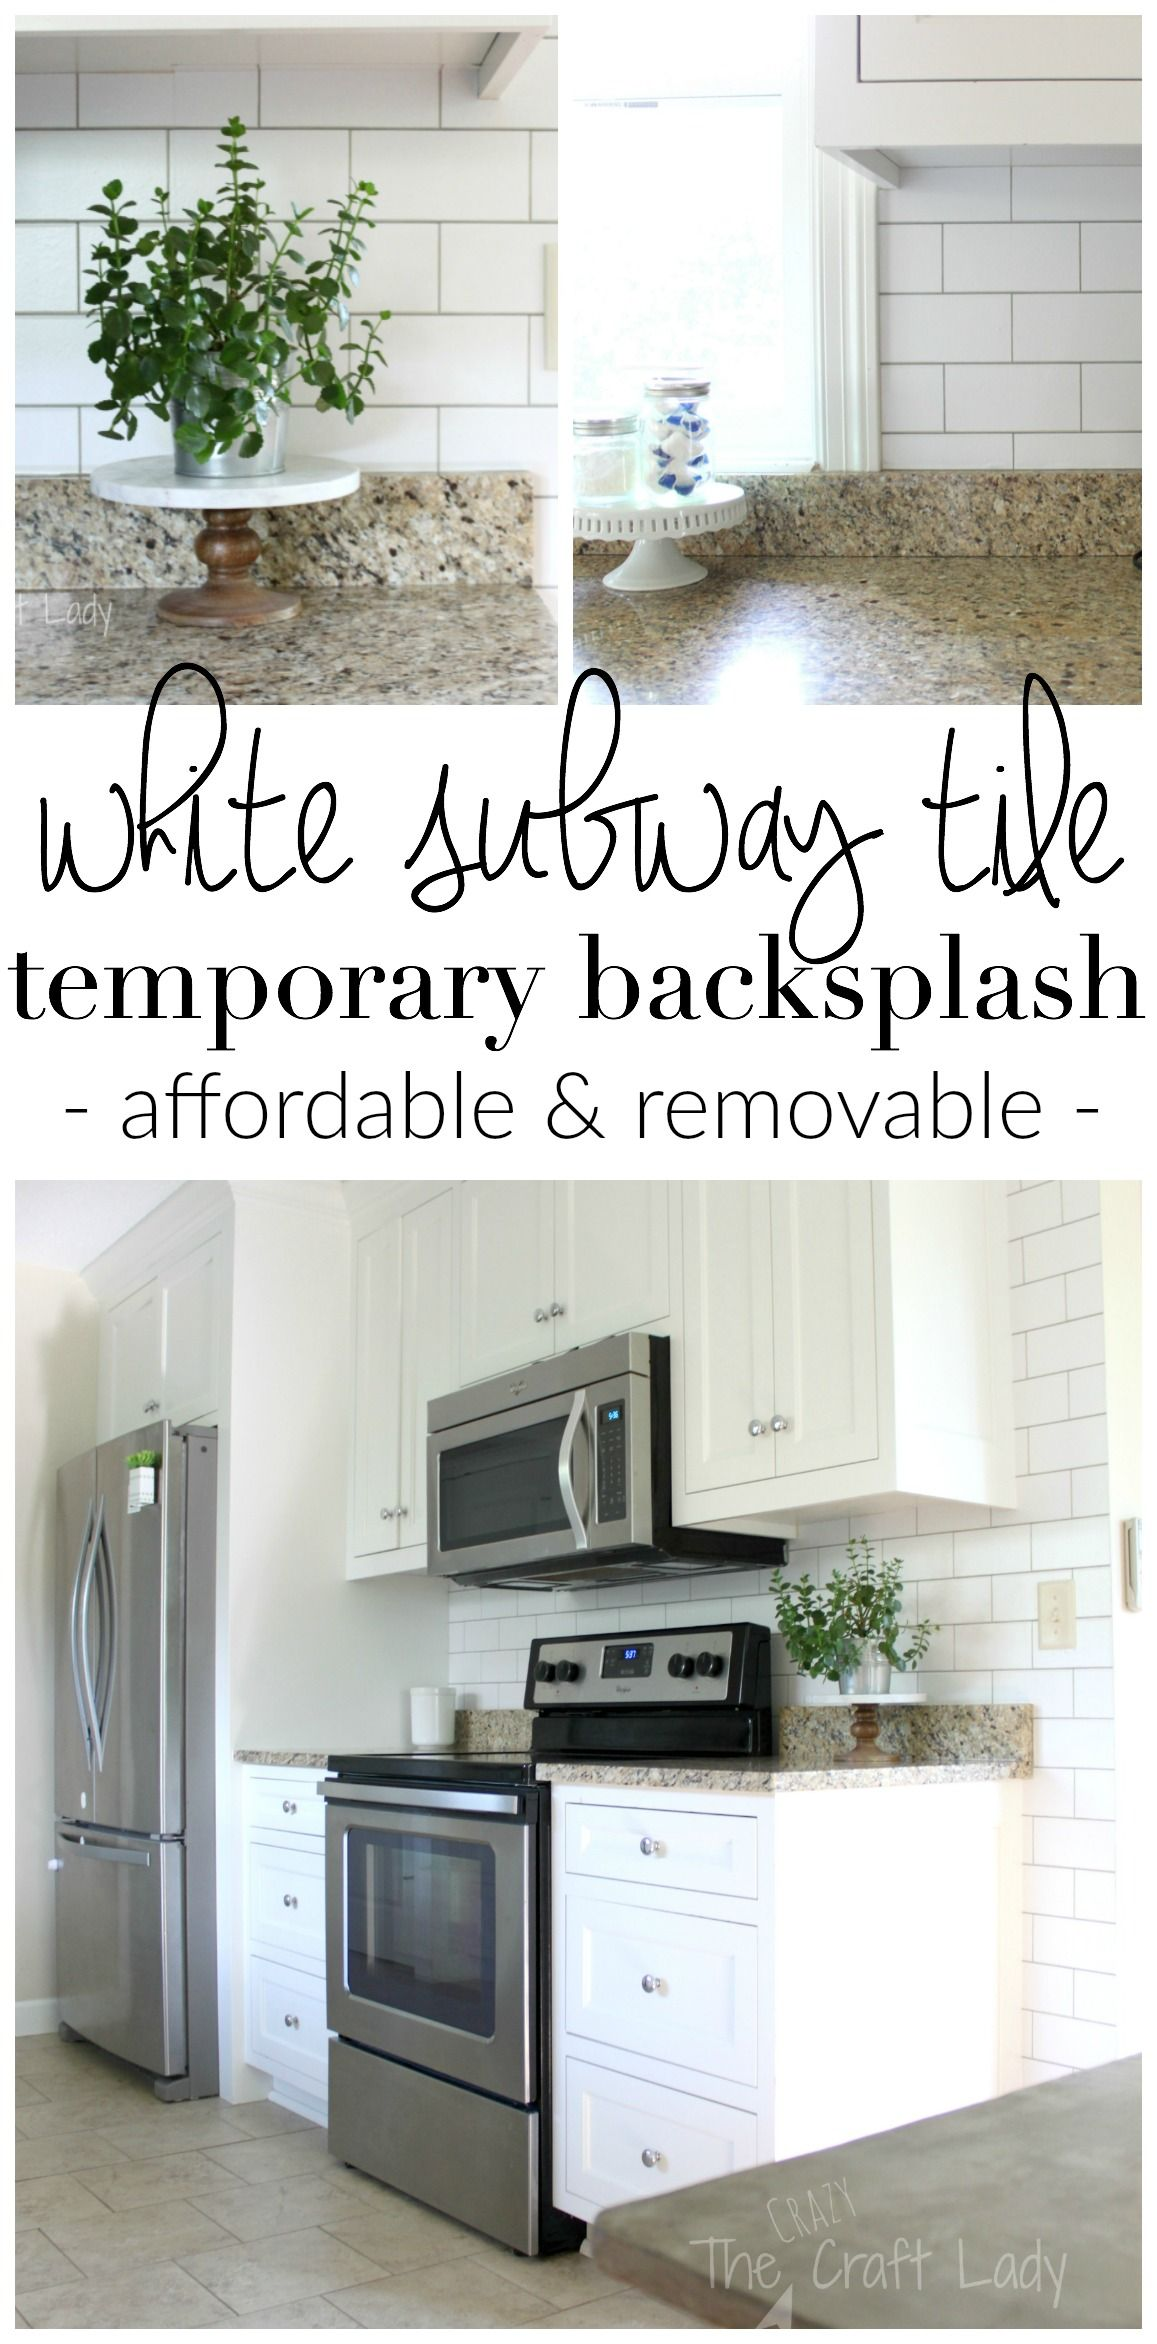 White subway tile temporary backsplash the full tutorial white make a white subway tile temporary backsplash with removable wallpaper follow this tutorial for a dailygadgetfo Images